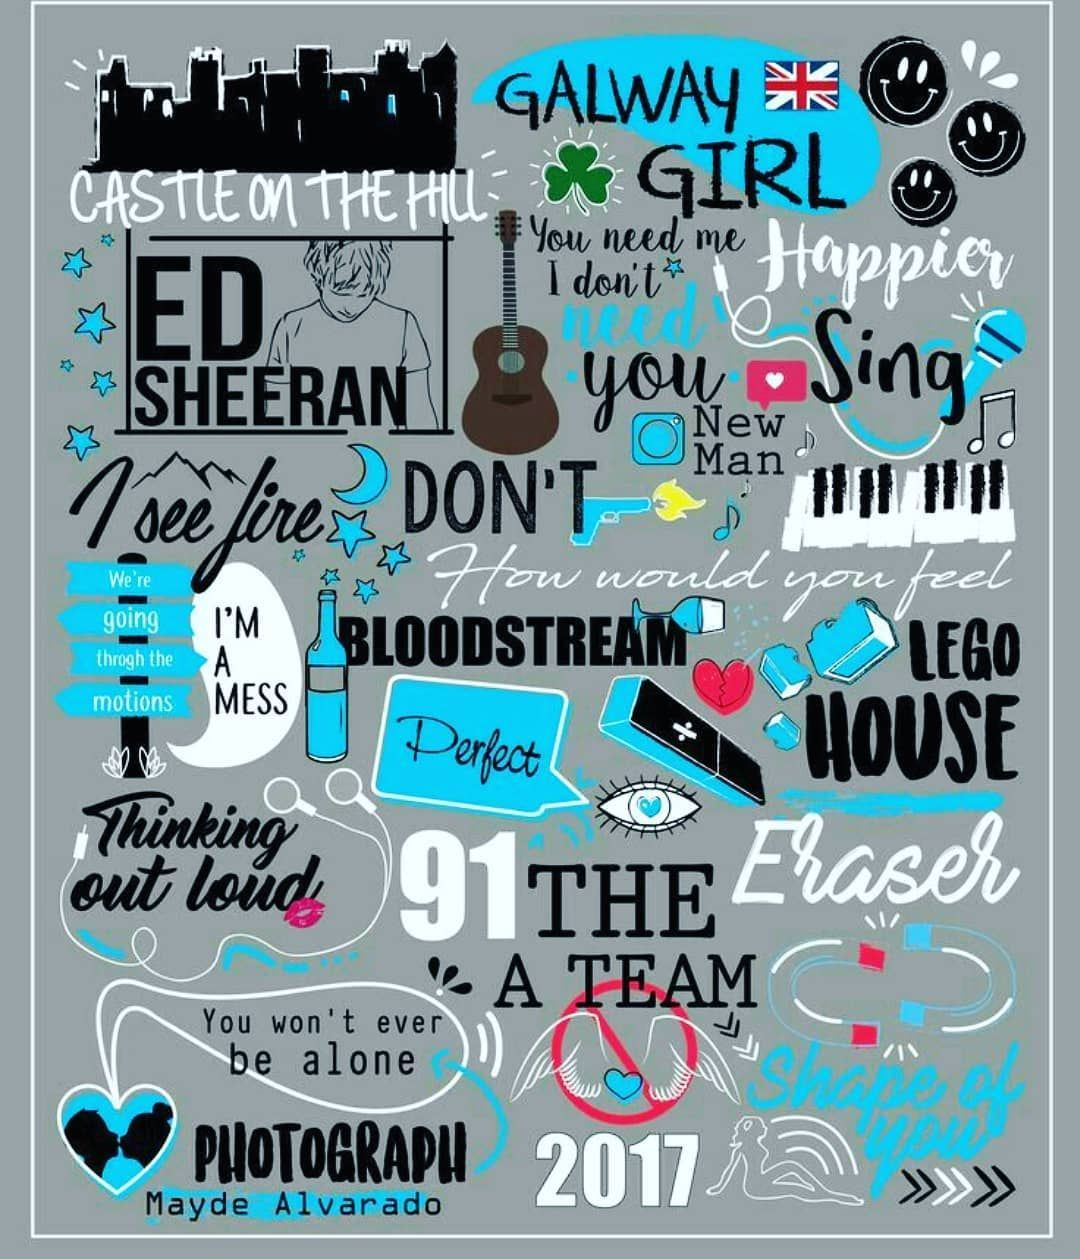 What Is Your Favorite Song From Dive Comment Teddysphotos Edsheeran Divedtour Dive Eddivedder Love Song Perfect Happier Cantores Ed Sheeran Edinho